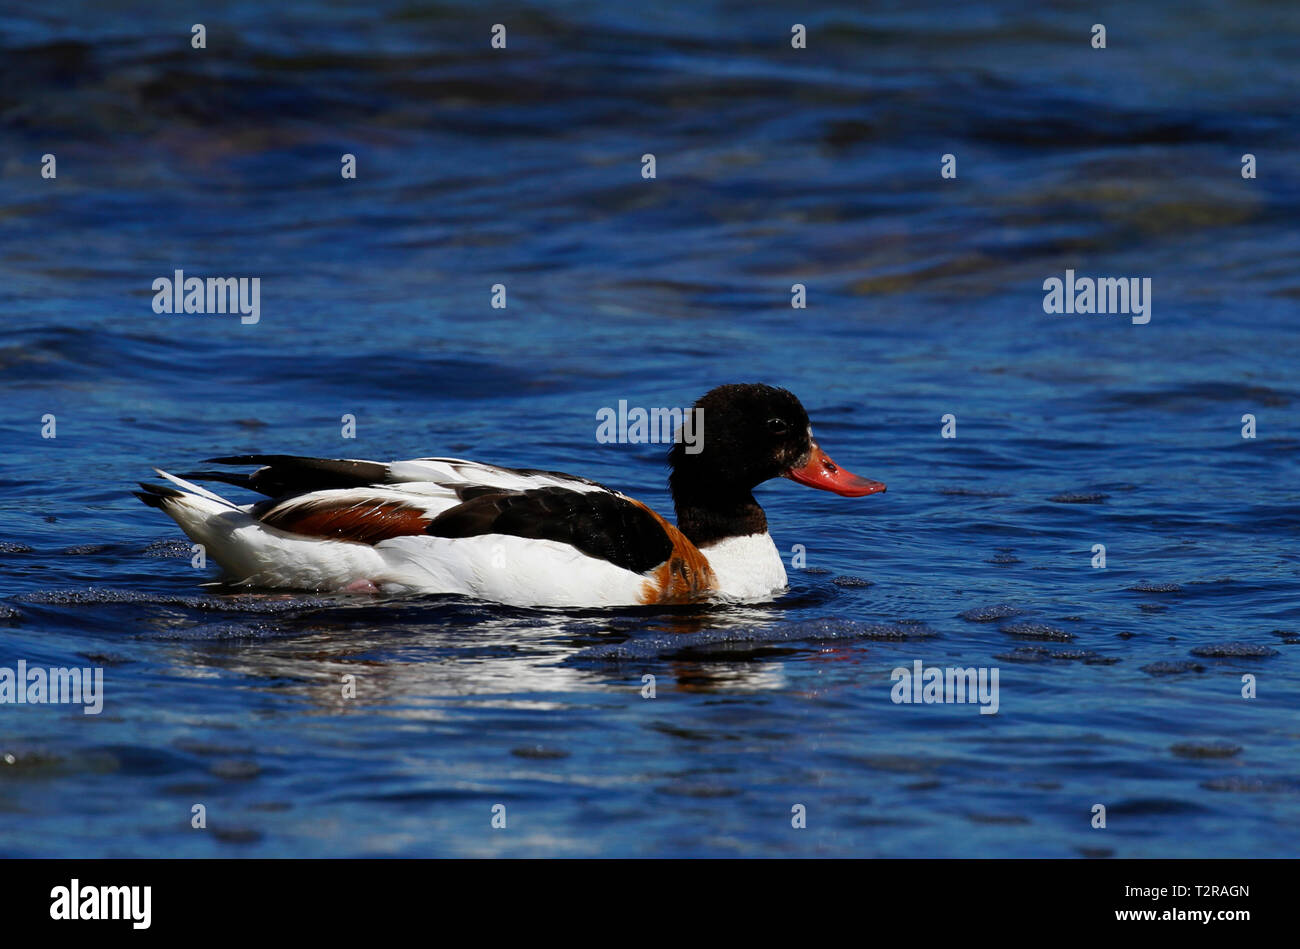 Adult female shelduck, Tadorna taorna, swimming in Baltic Sea at the Gotland Island in Sweden. - Stock Image